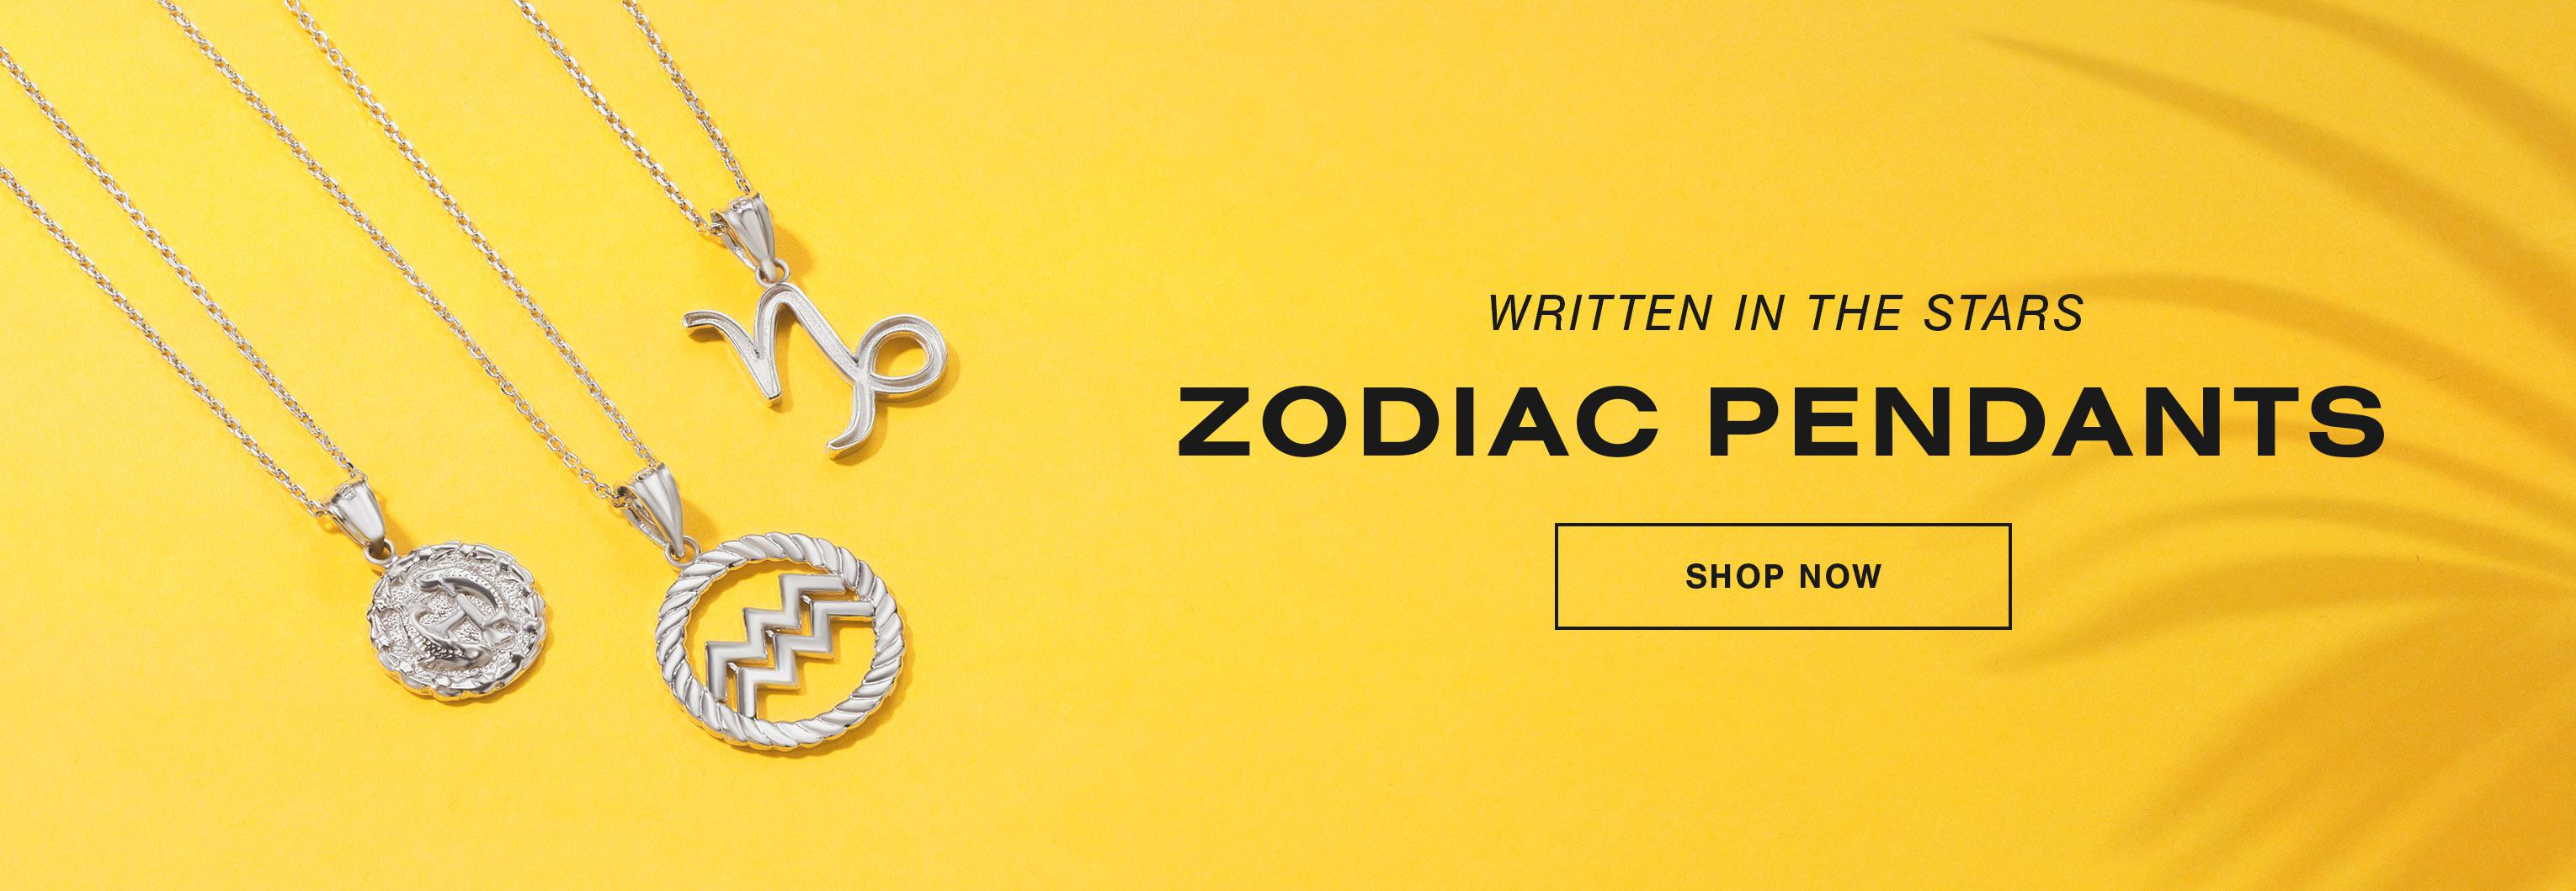 Zodiac Pendants - Shop Now